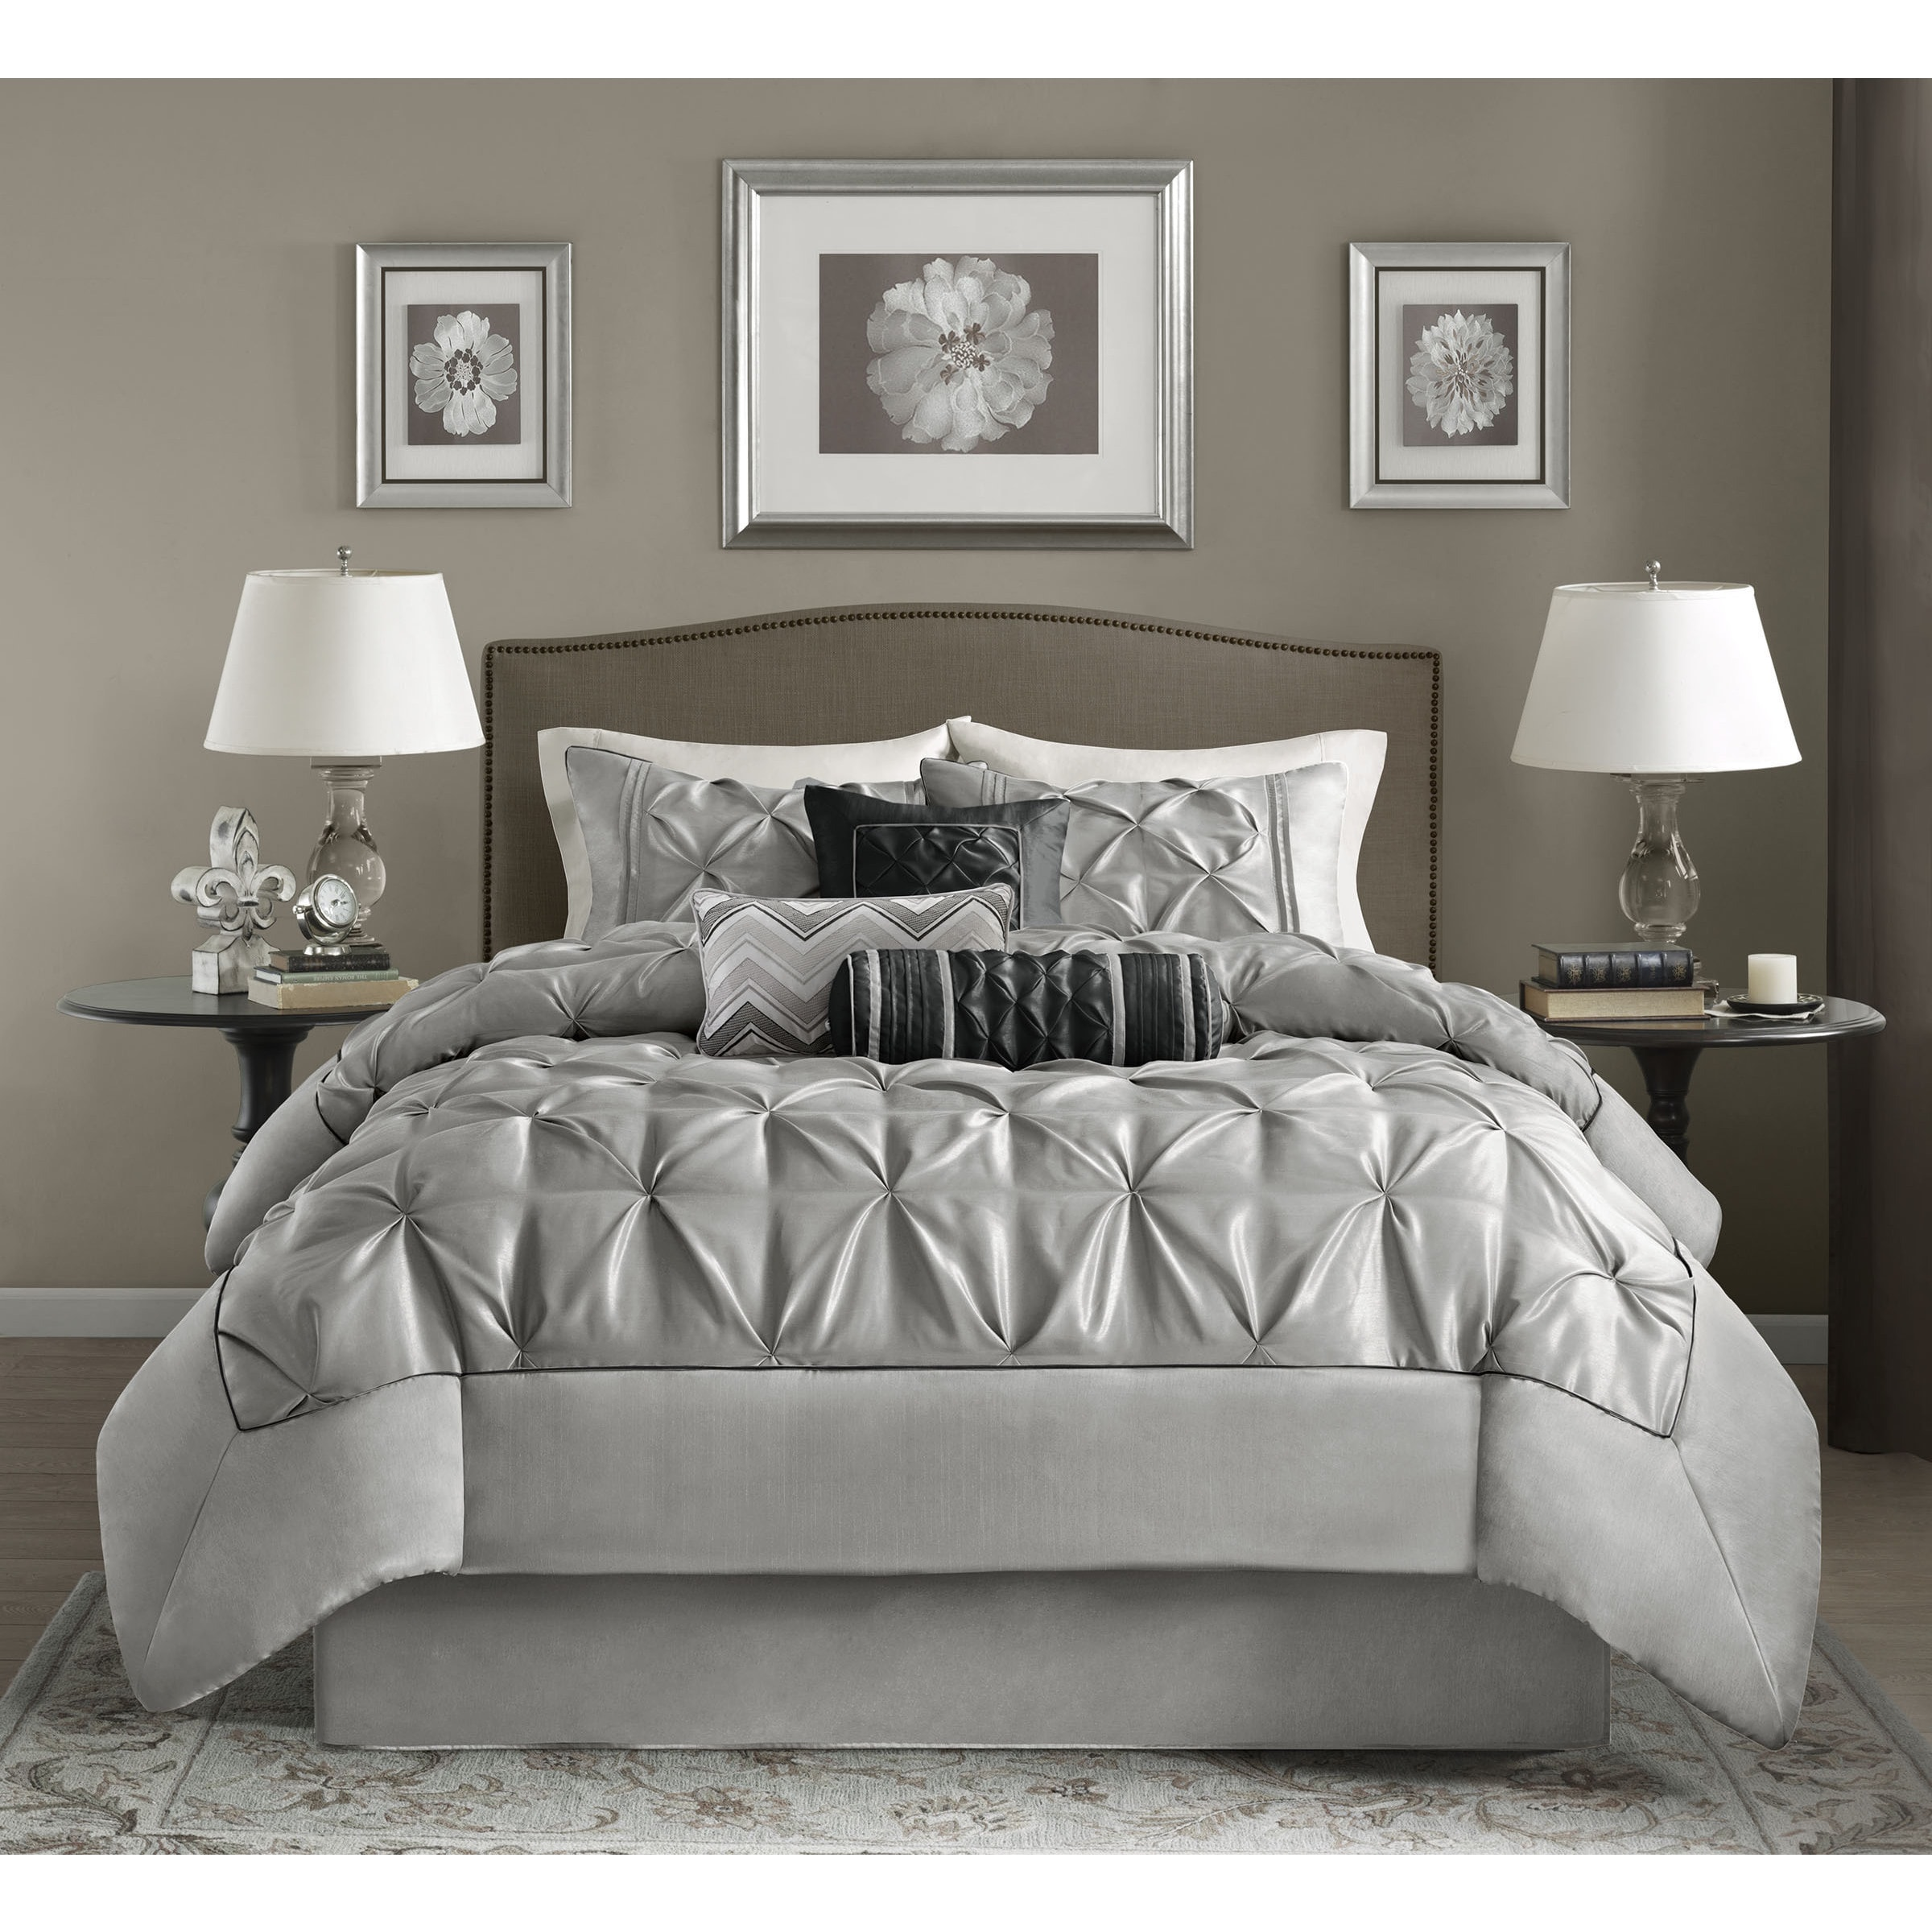 piece online bed electronics furniture more shopping bedding gathered jewelry vcny pin overstock com clothing marchella set comforter